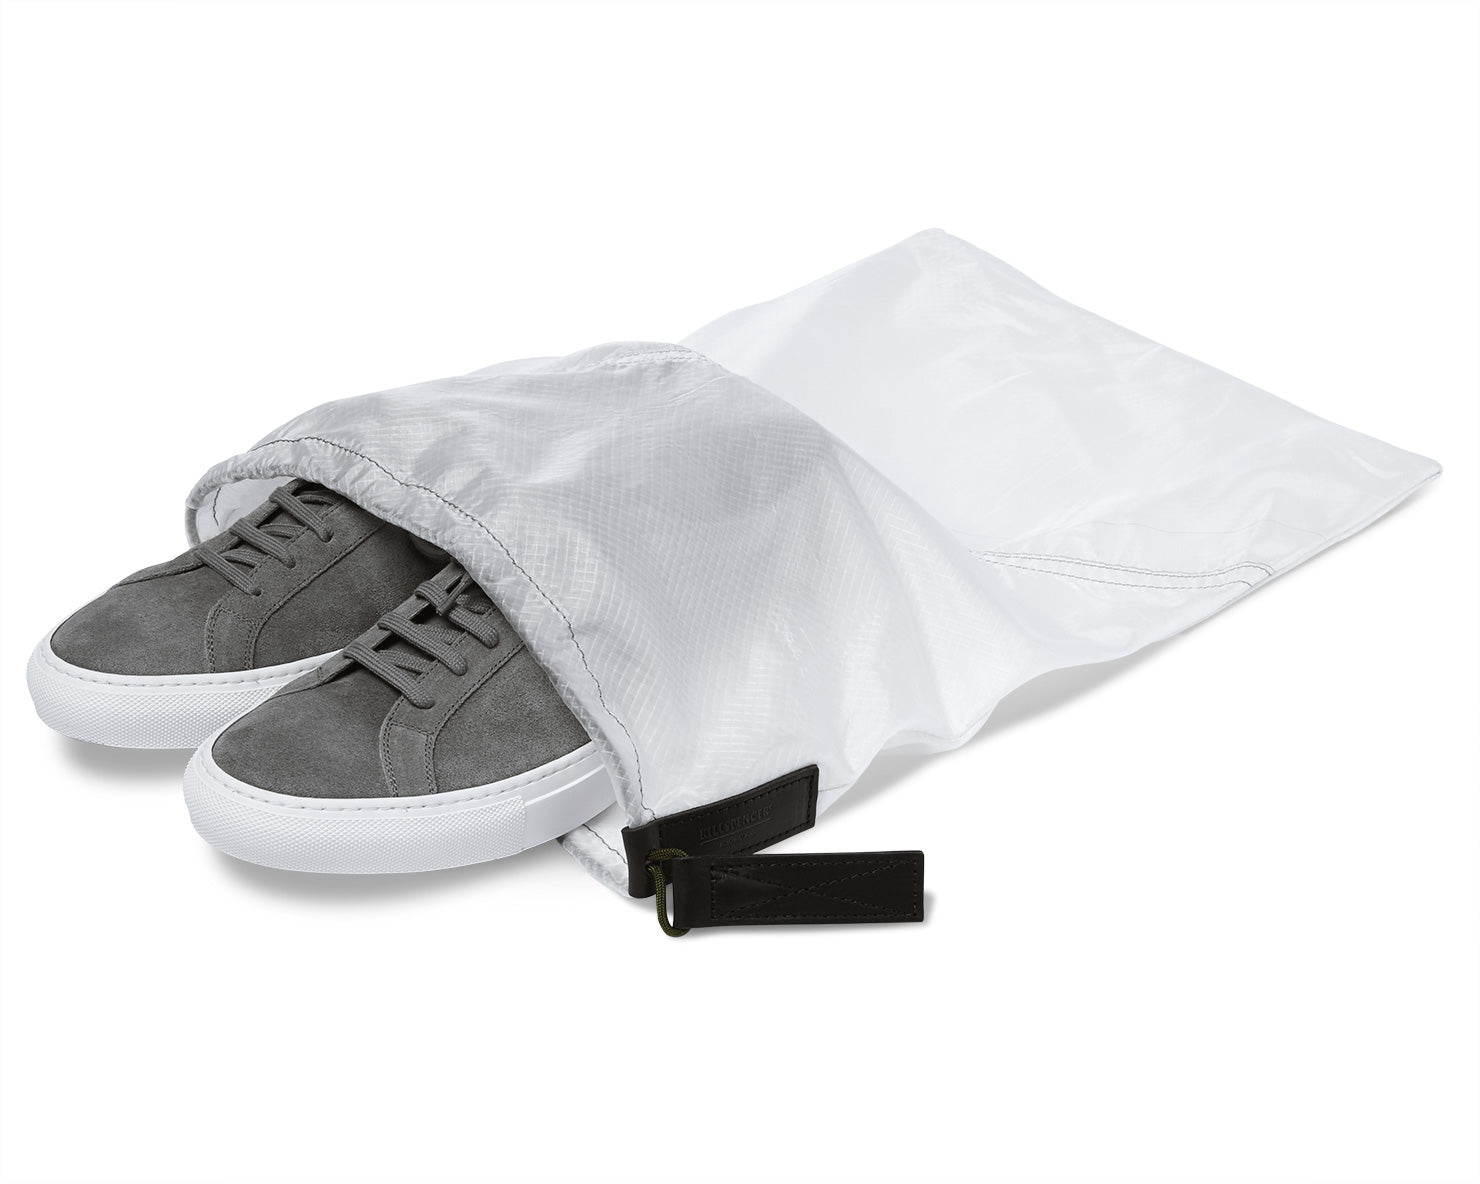 PARACHUTE BAG 2.0 | KILLSPENCER® - White Parachute